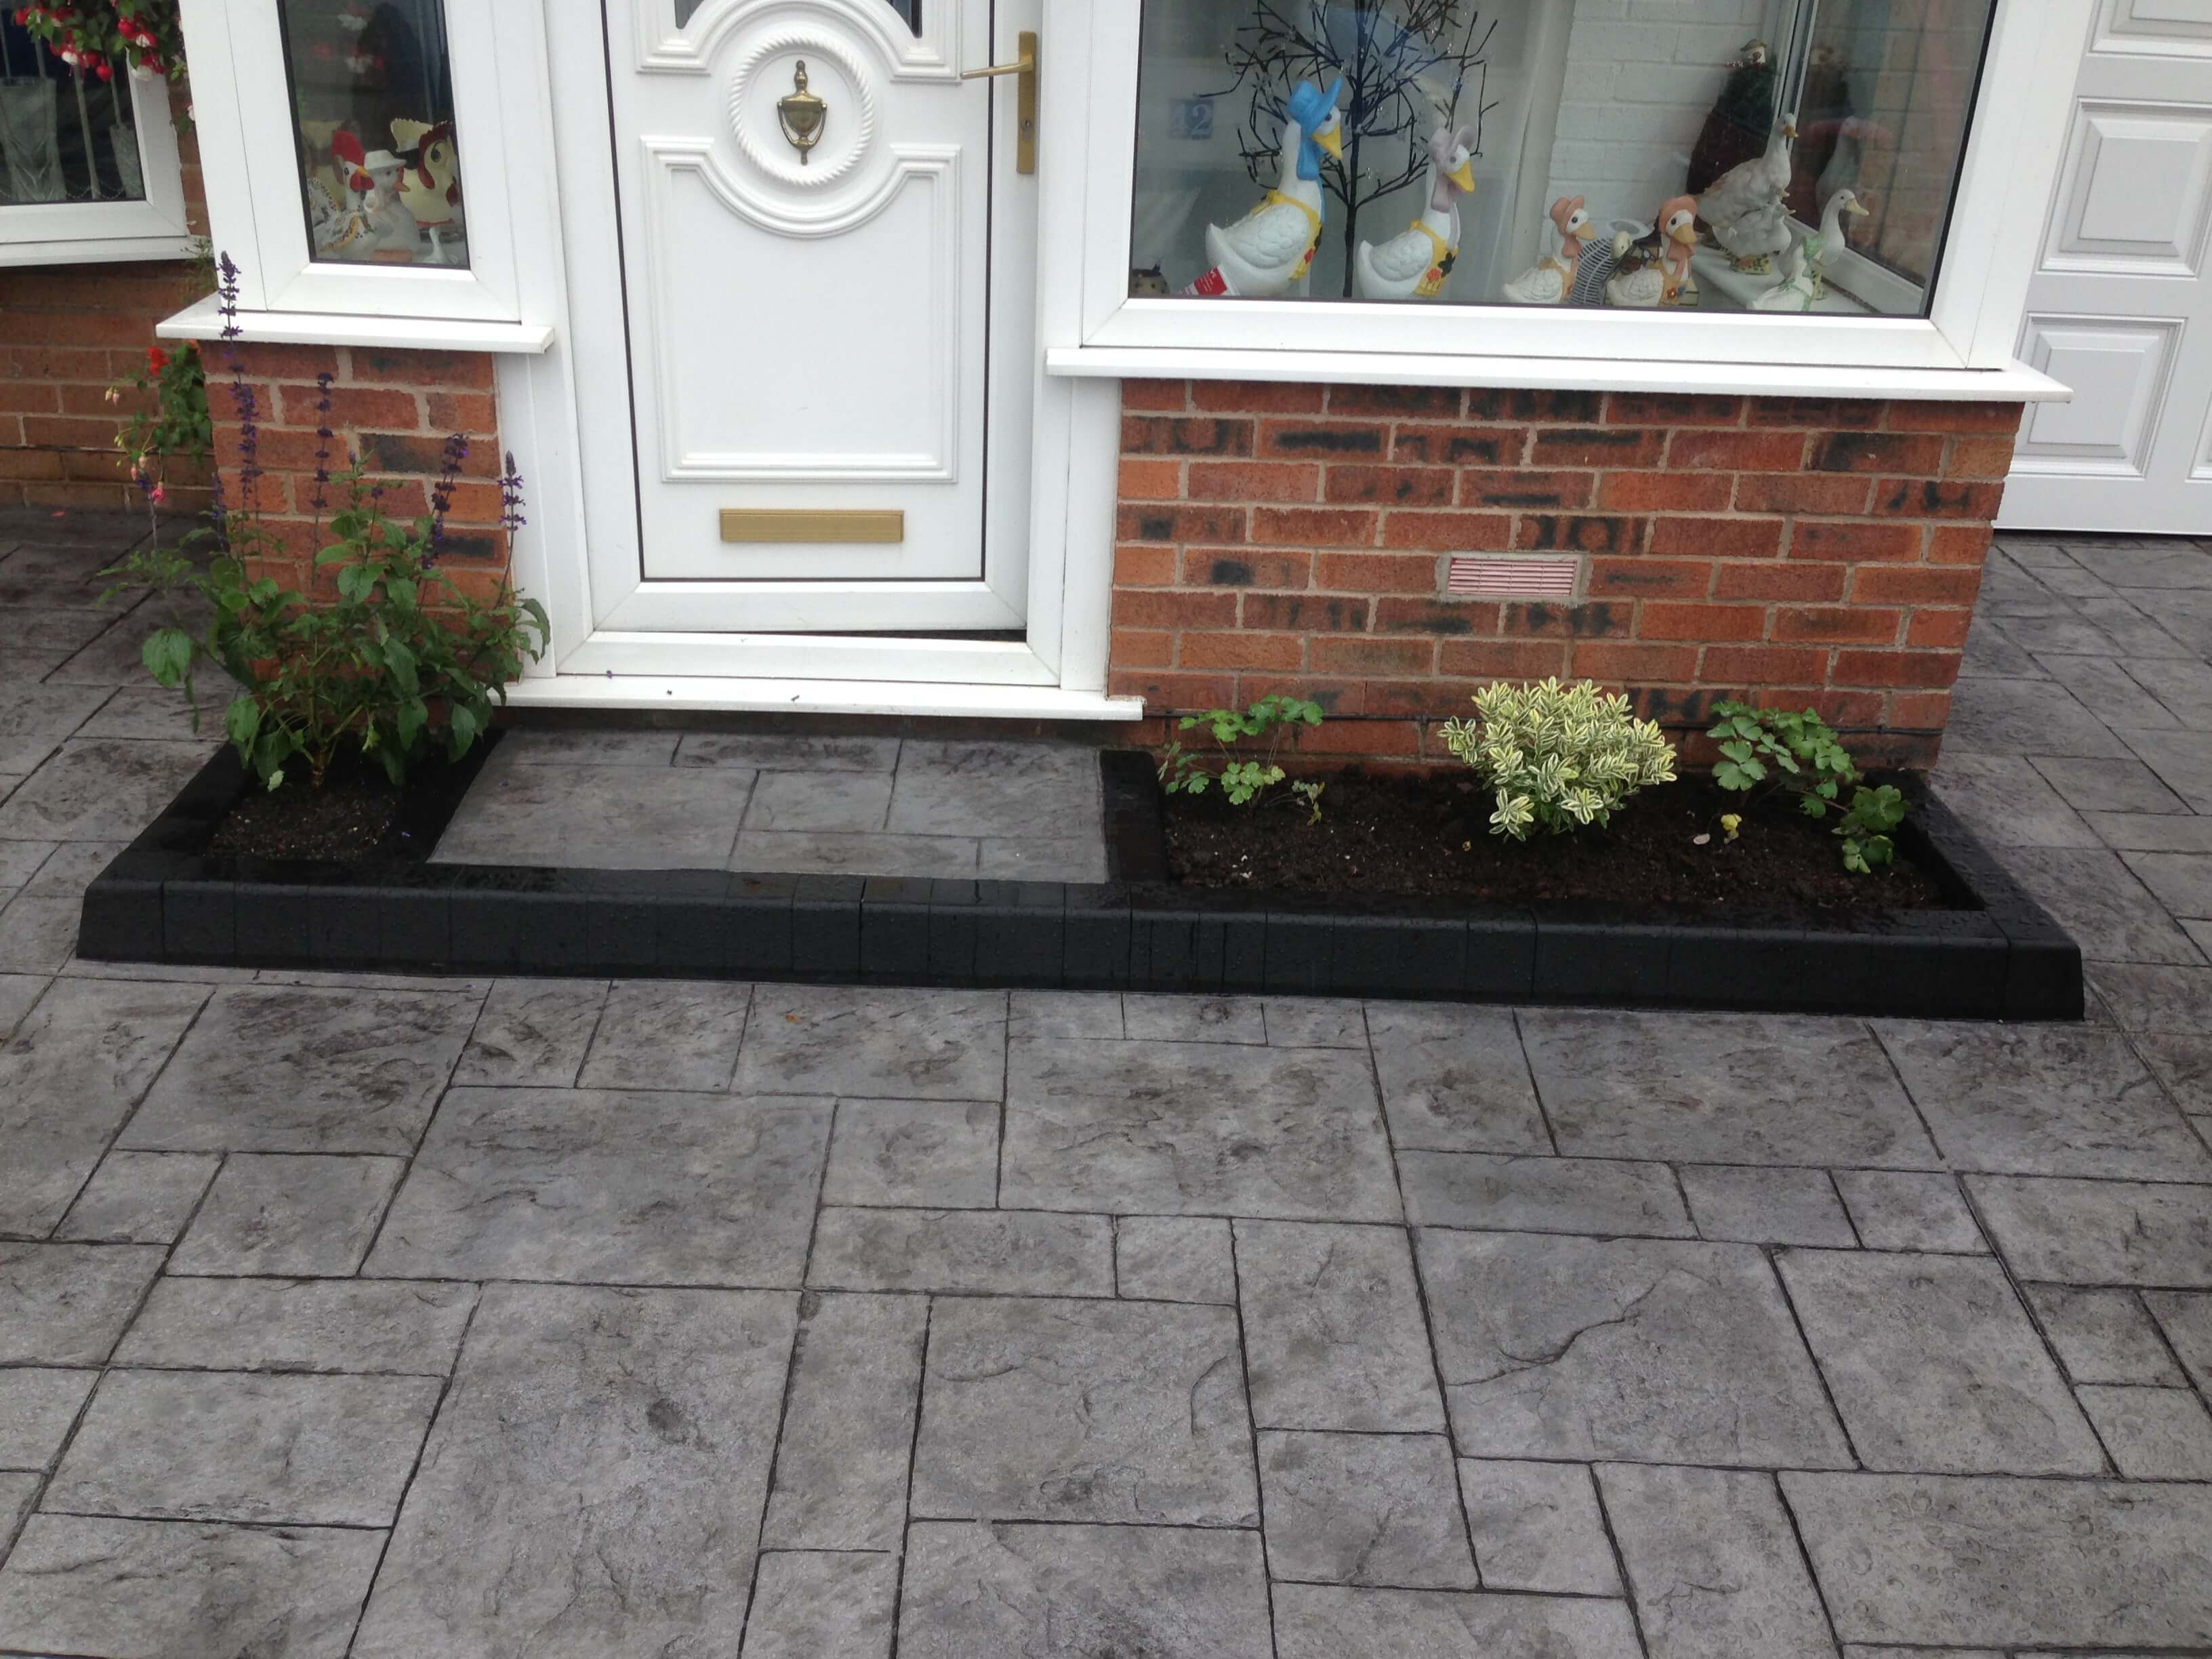 driveways - for raised planters